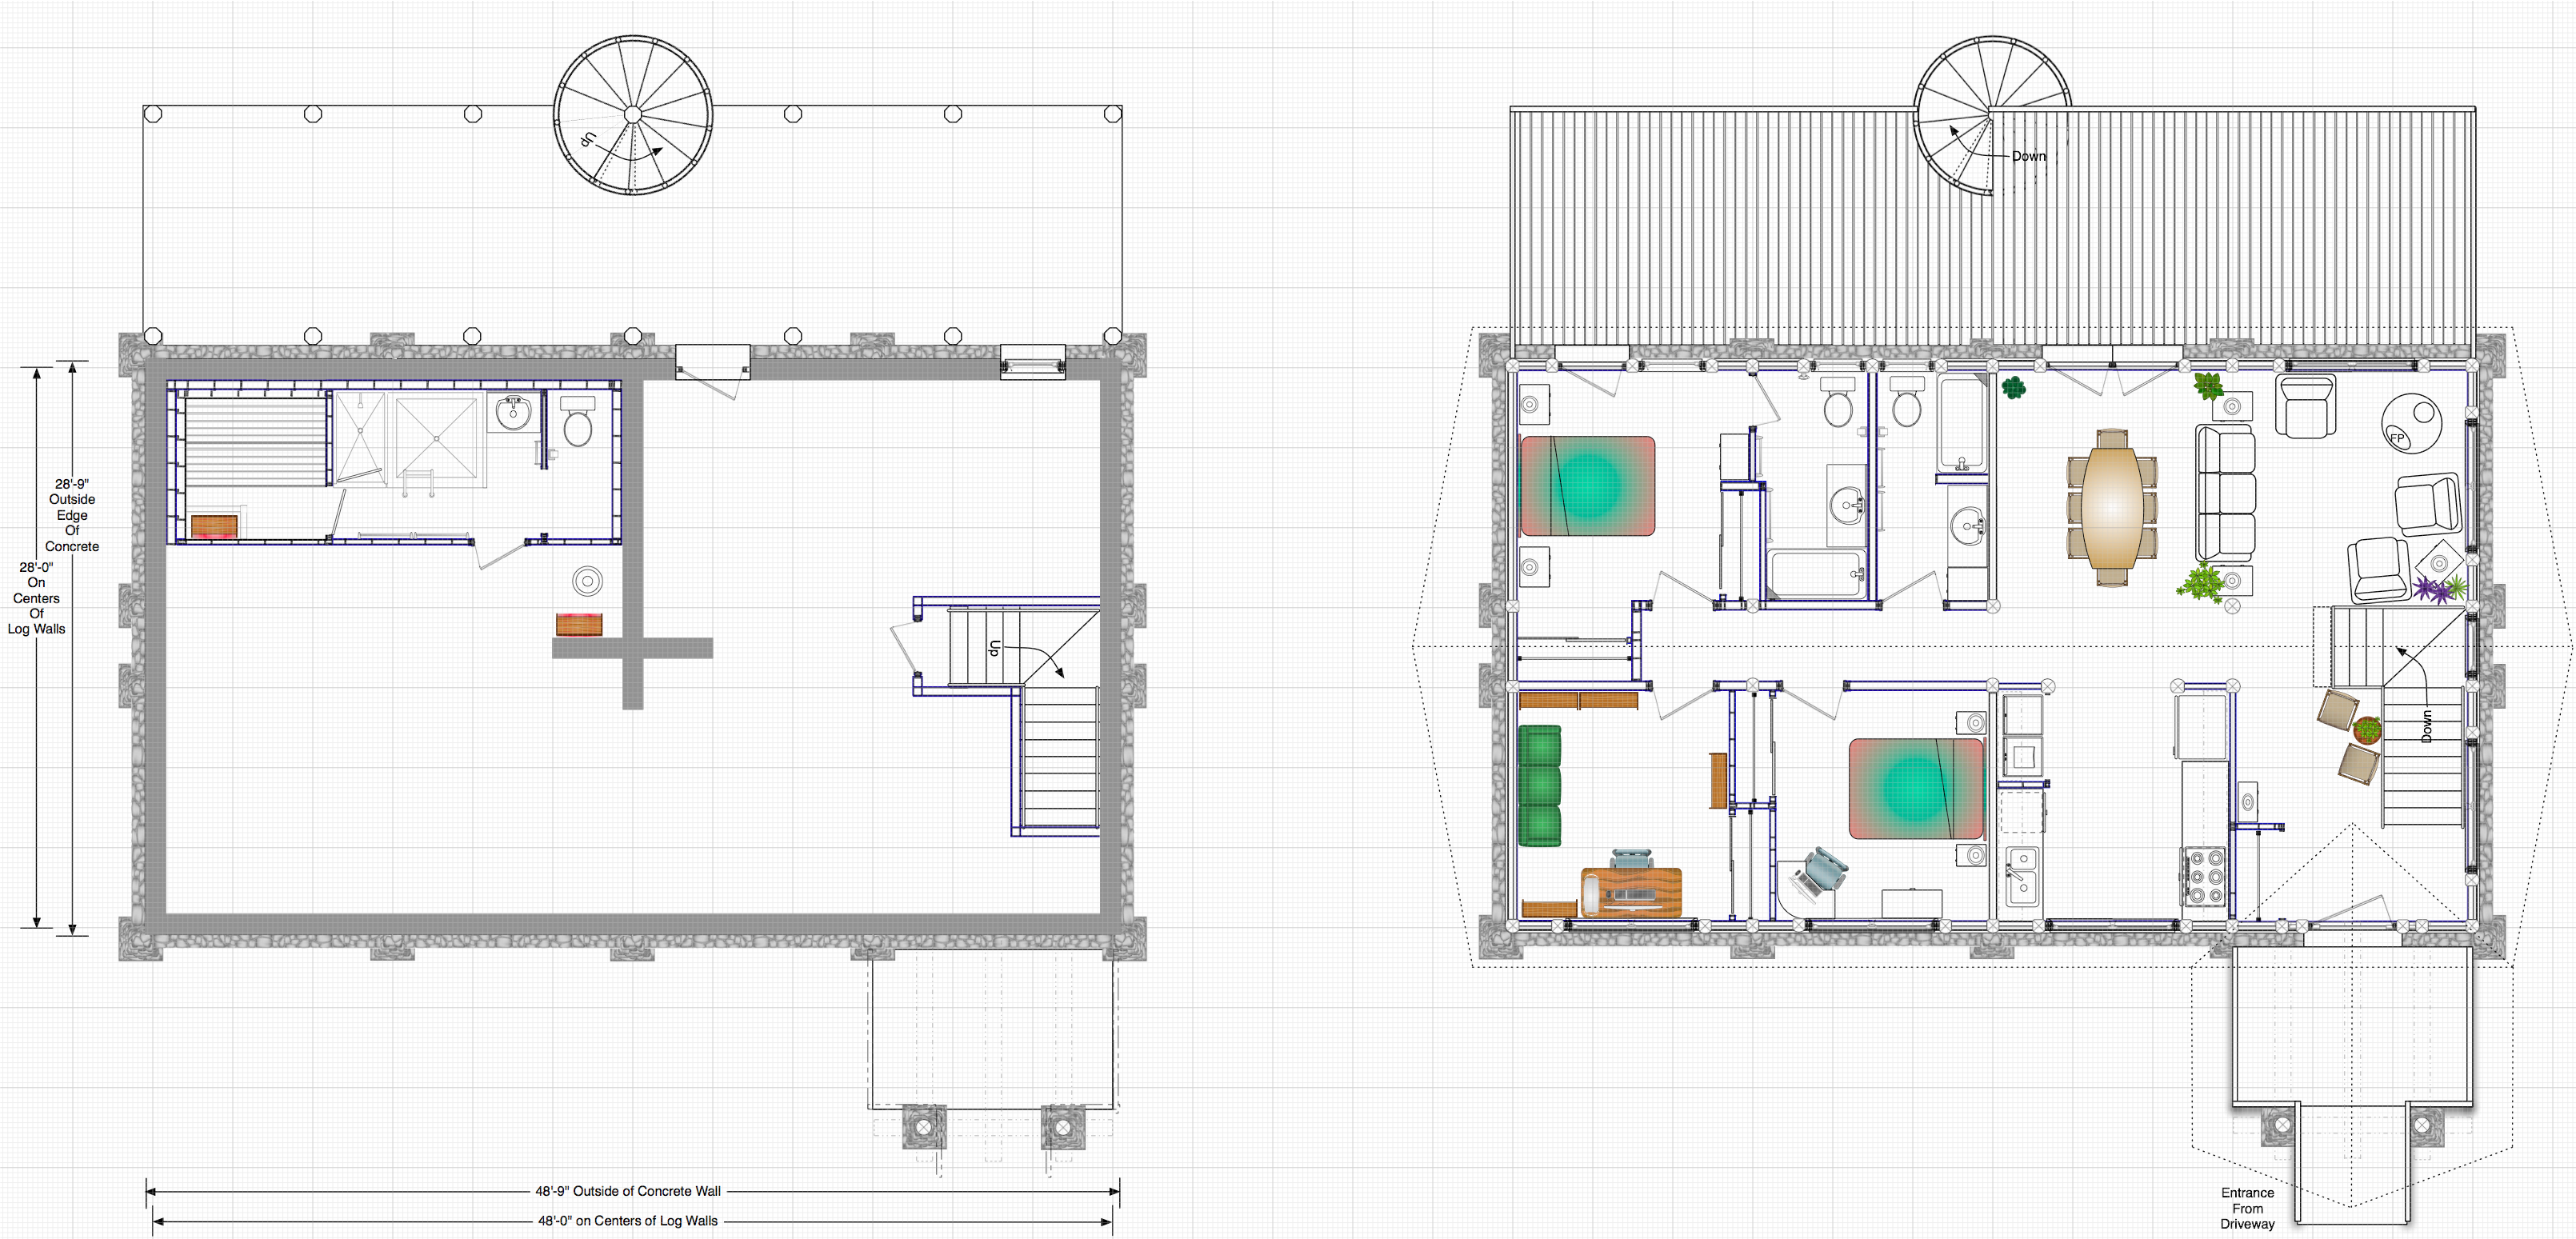 100 stair plan ana white sweet pea garden bunk bed storage stair plan creating a home plan for liza and will jensen